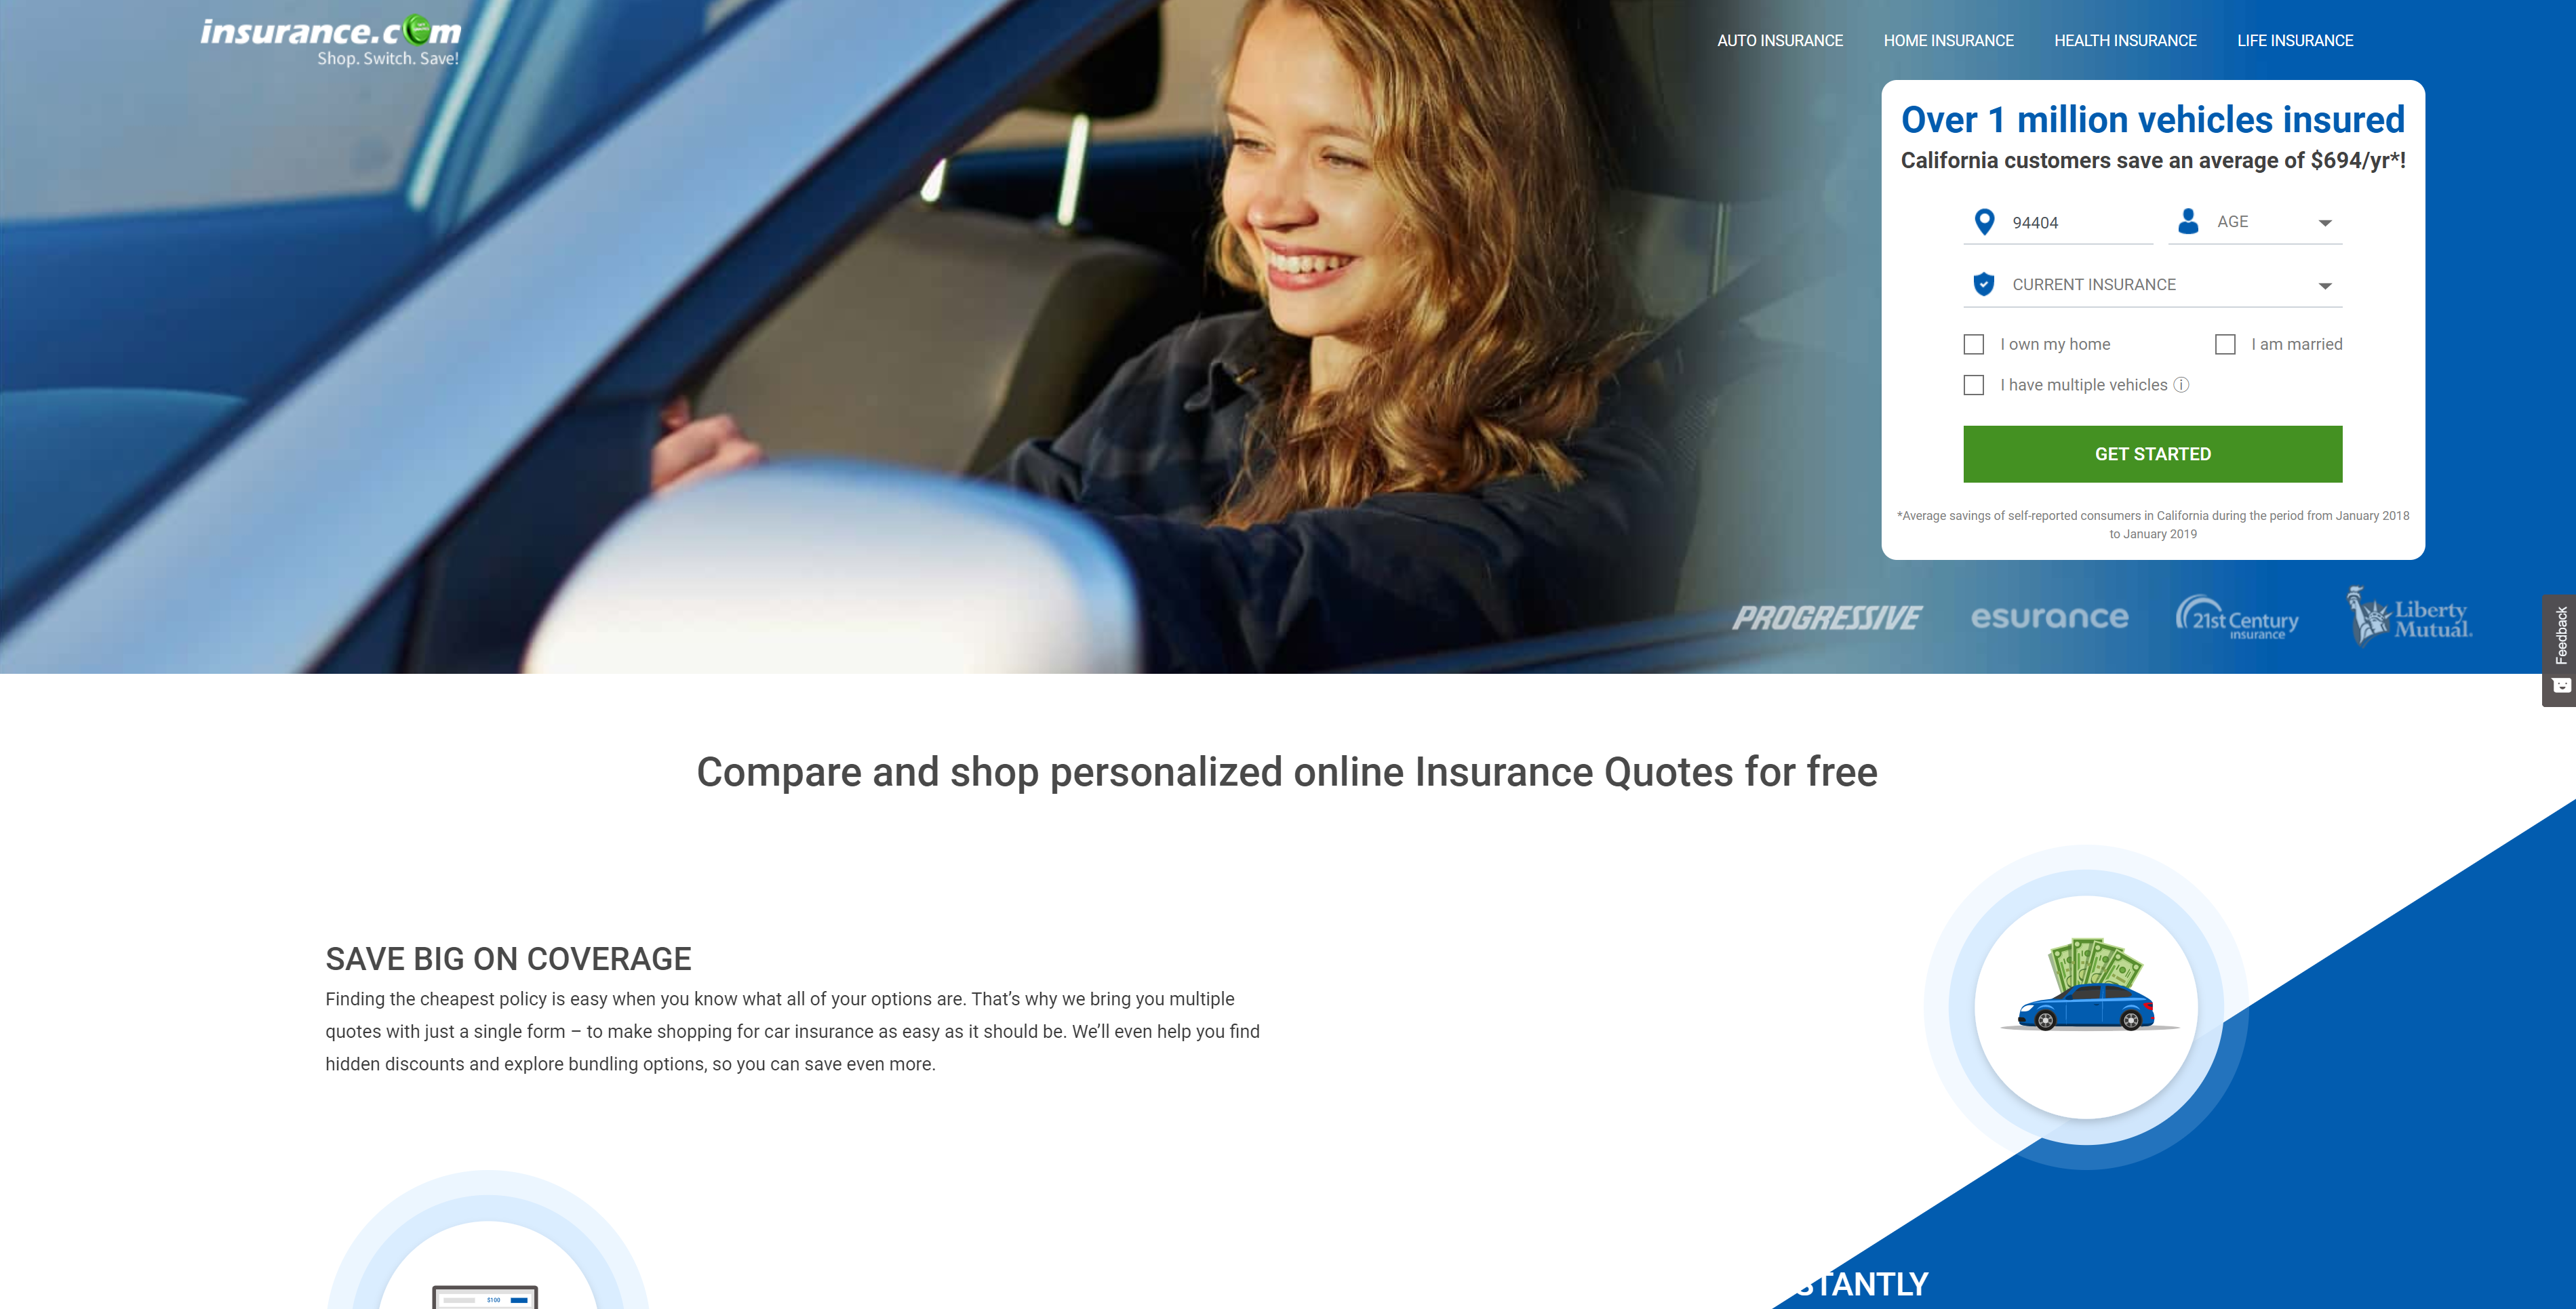 Screenshot featuring the homepage of insurance.com